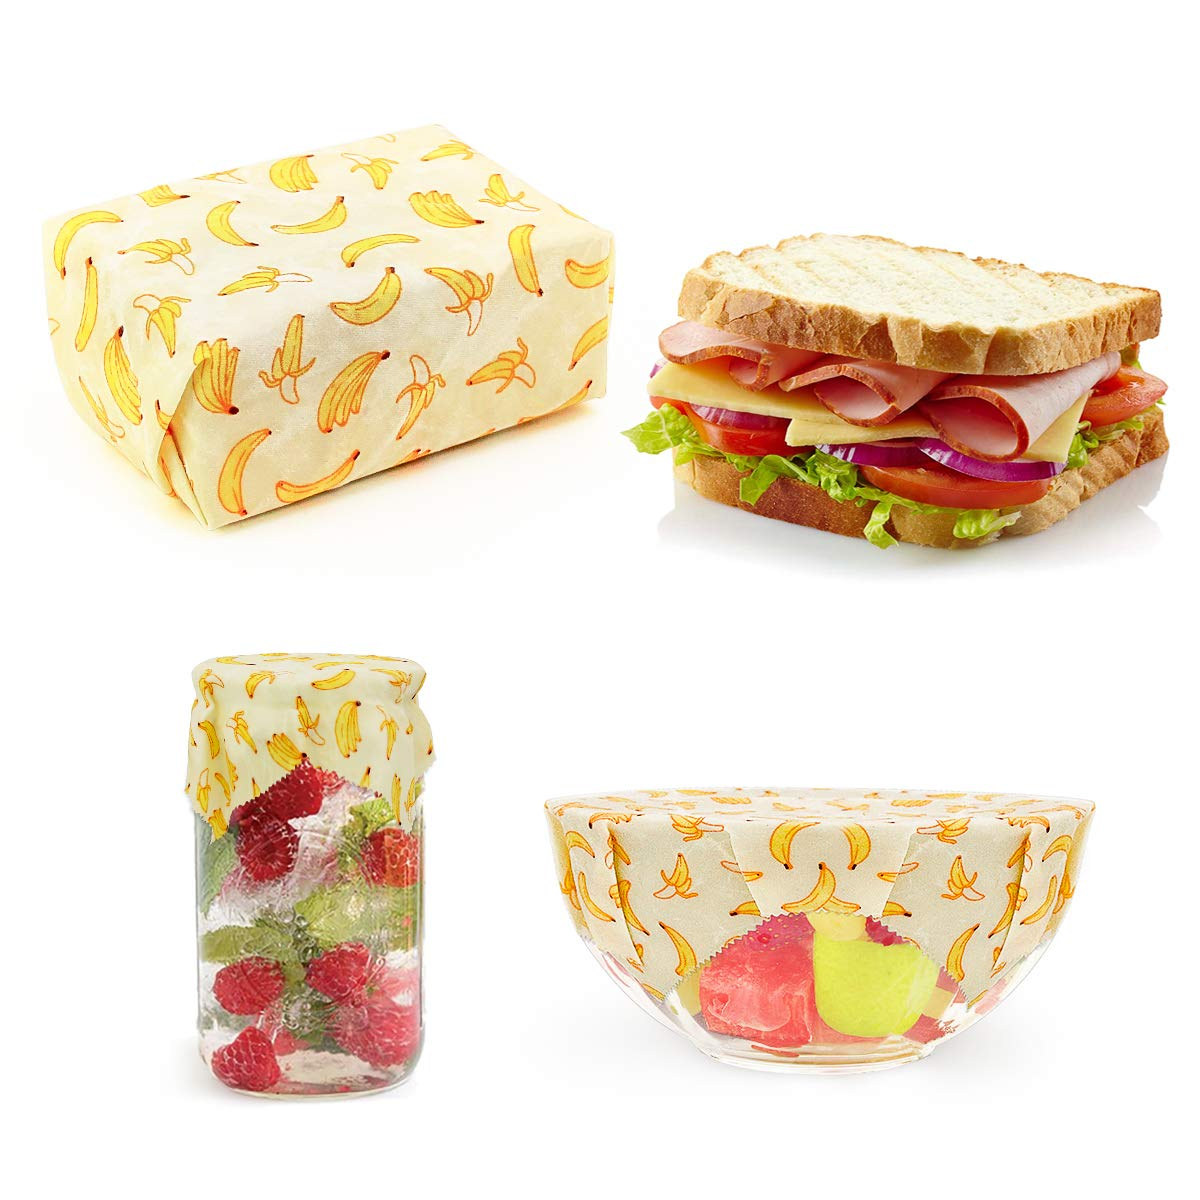 Hsicily Reusable Food Wraps, Eco Friendly Beeswax Wraps Sustainable Plastic Free Food Storage 3 Pcs, for Sandwiches Extra Mesh Produce Bags, Breathable Wraps Handmade, Non-Toxic & Biodegradable